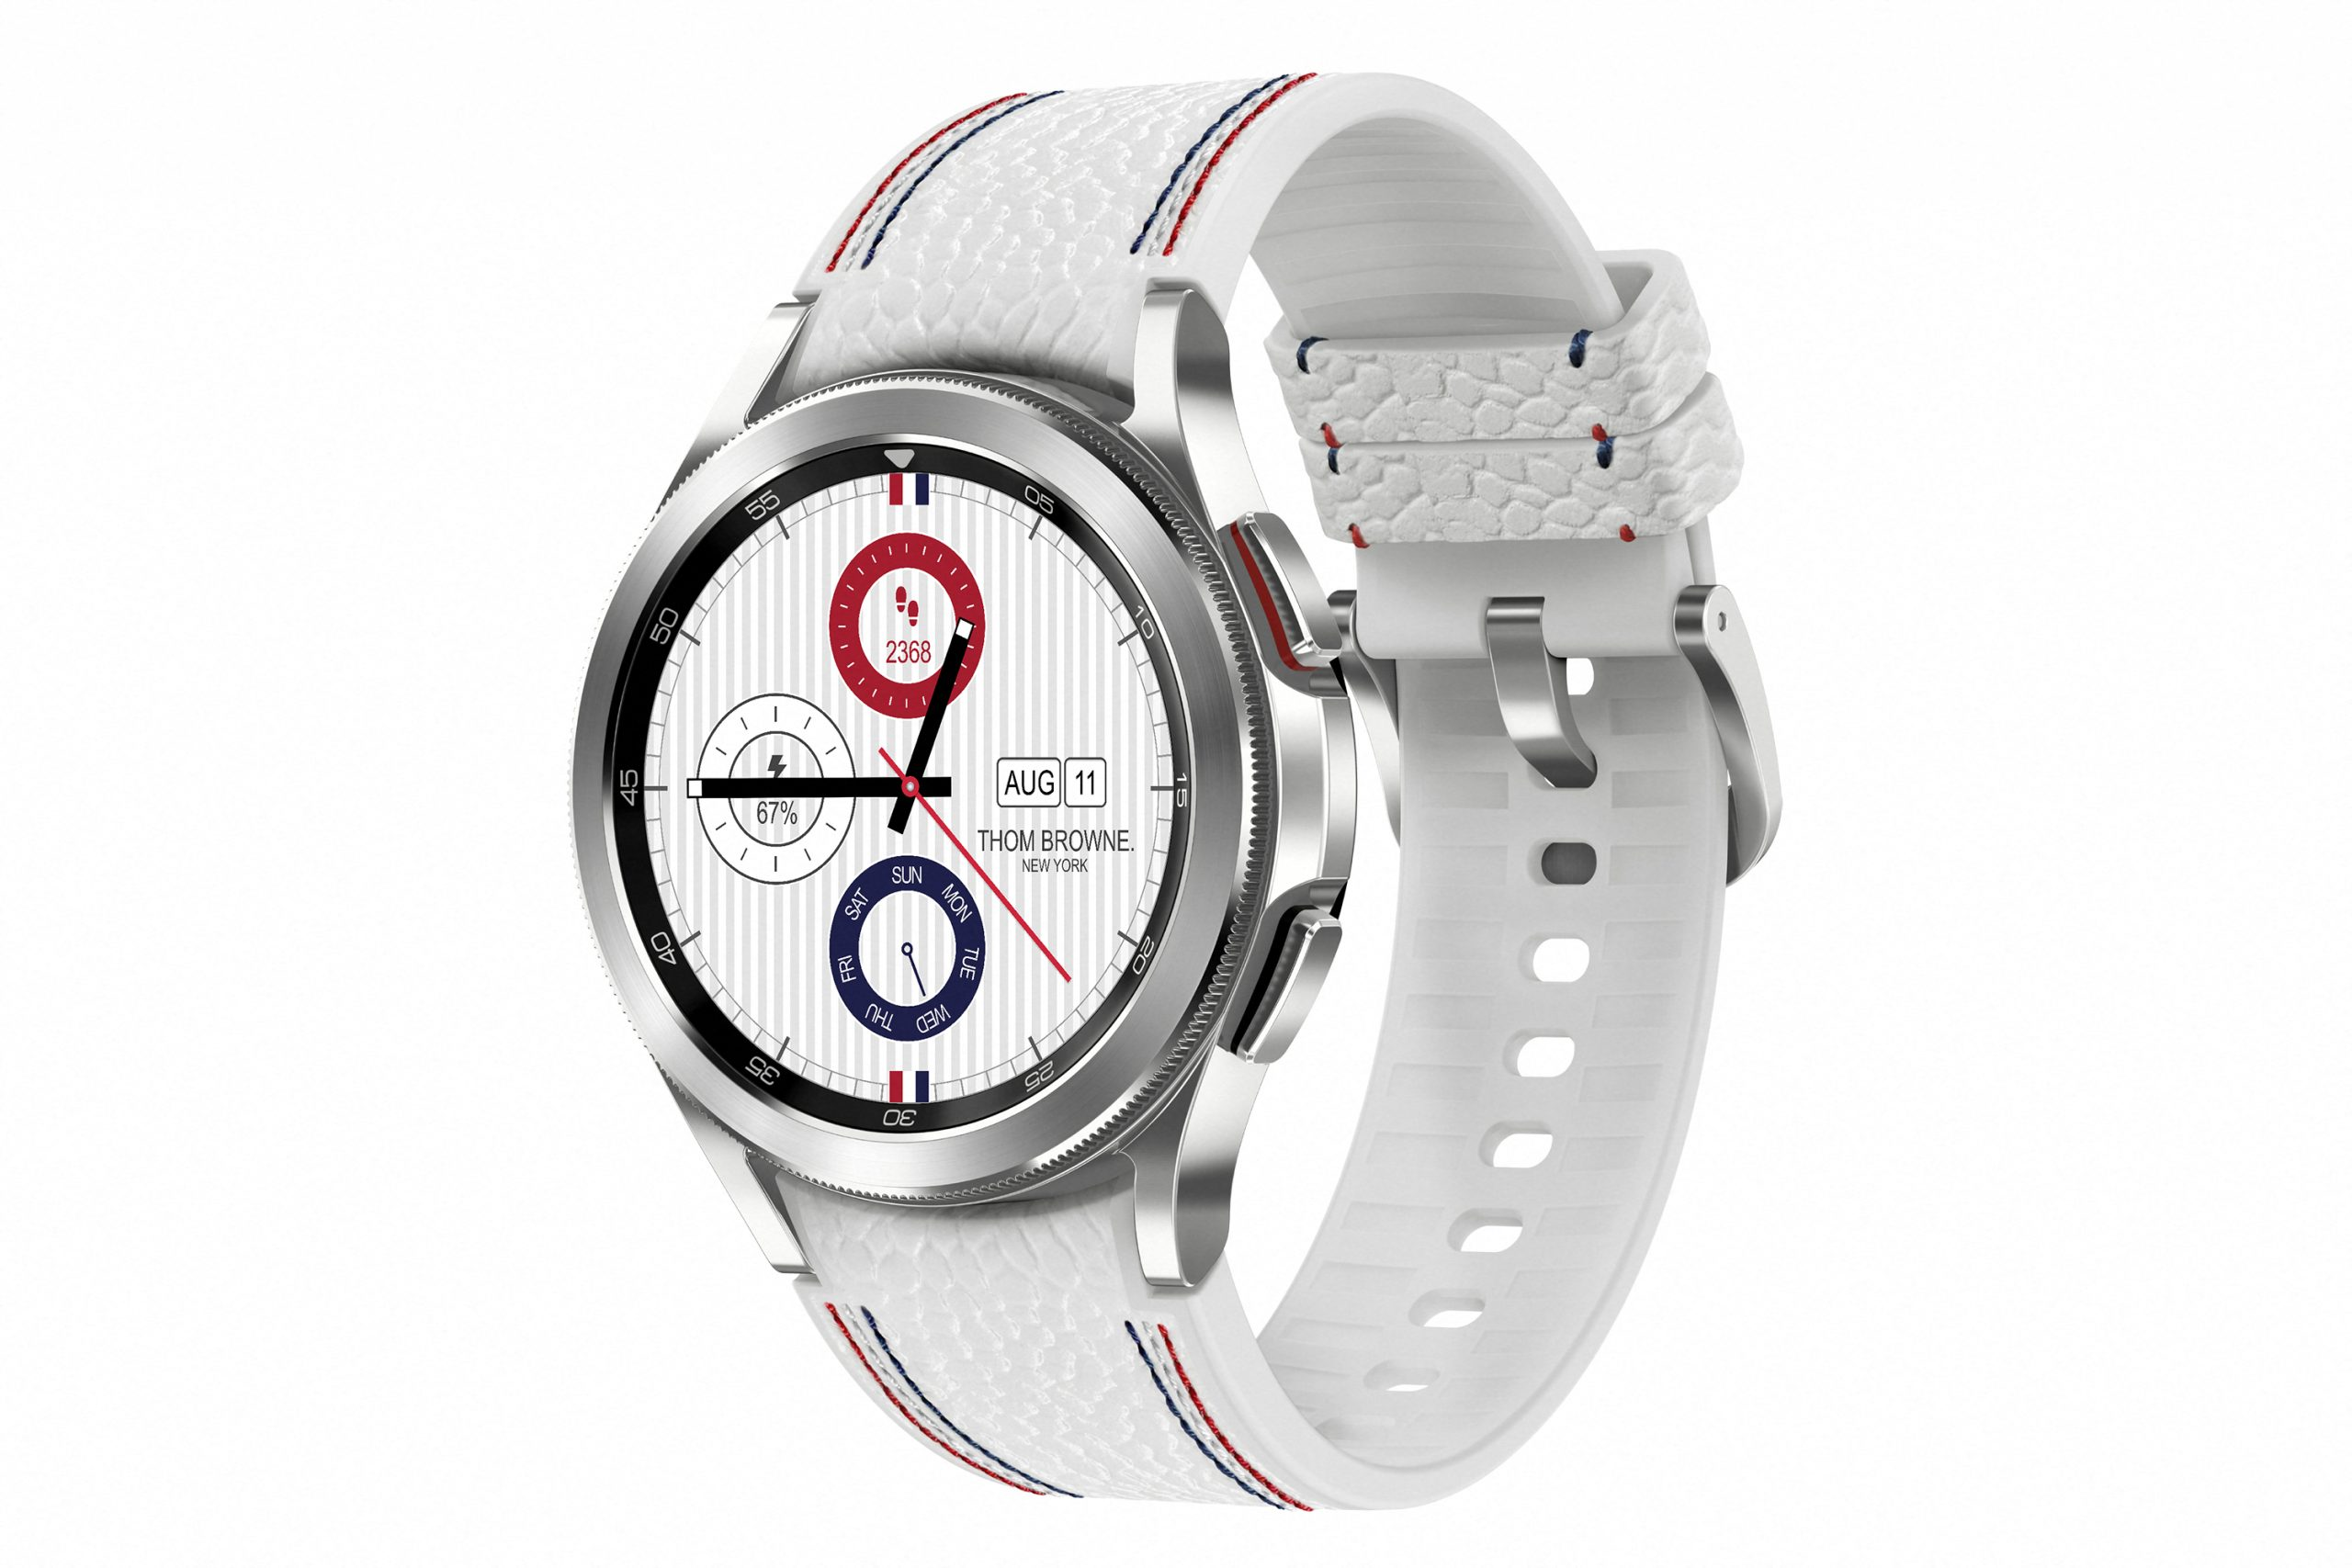 High Fashion Meets Luxury Tech With Samsung's Galaxy Watch4 Classic Thom Browne Edition